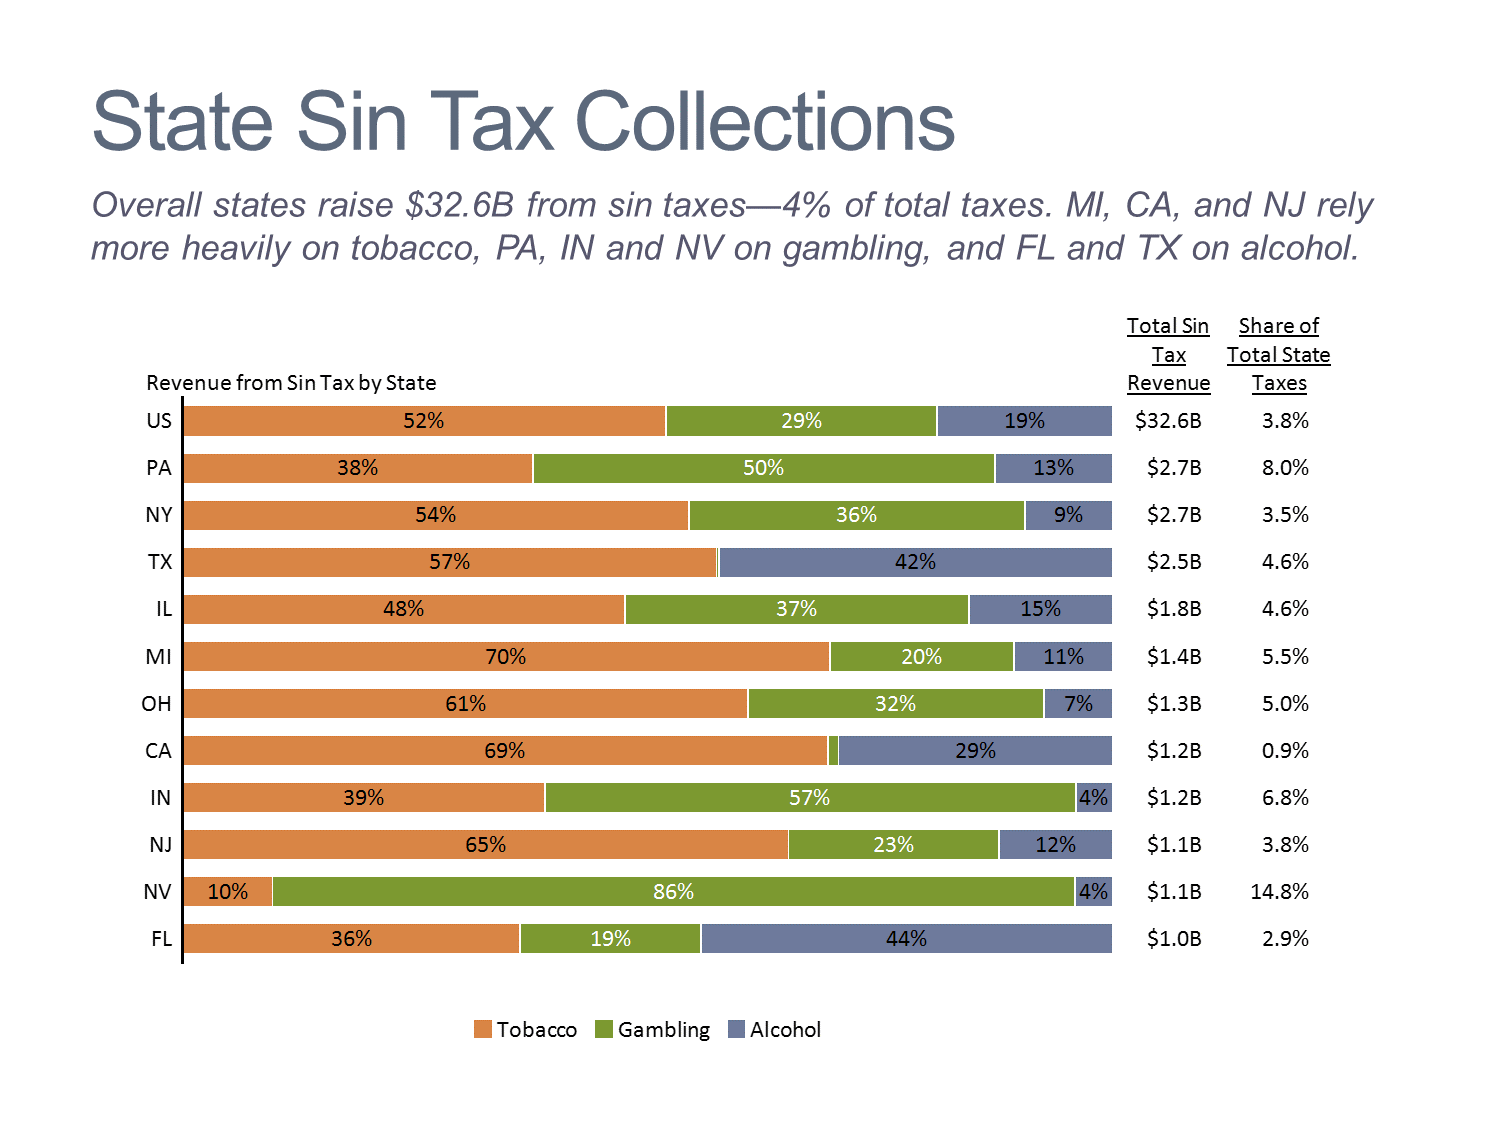 State Sin Tax Collections 100% Stacked Bar Chart